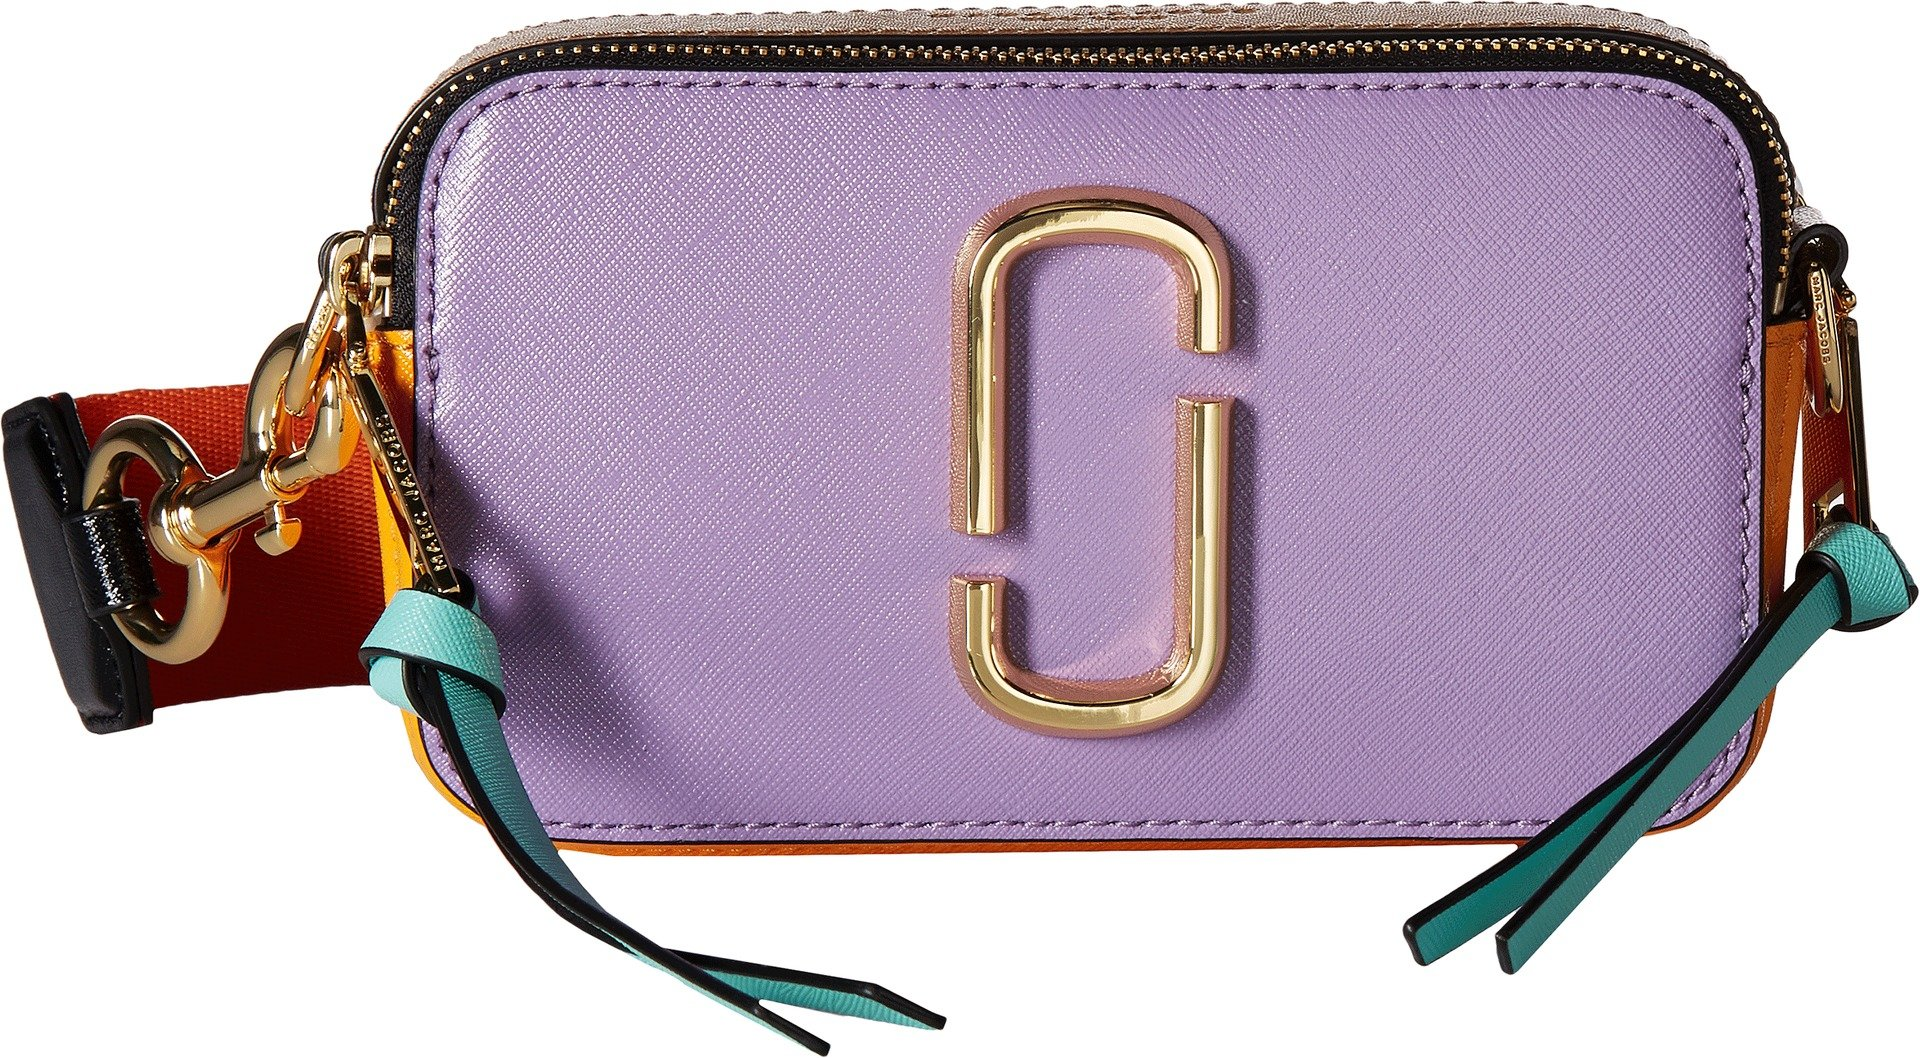 Marc Jacobs Women's Snapshot Camera Bag, Hyacinth, One Size